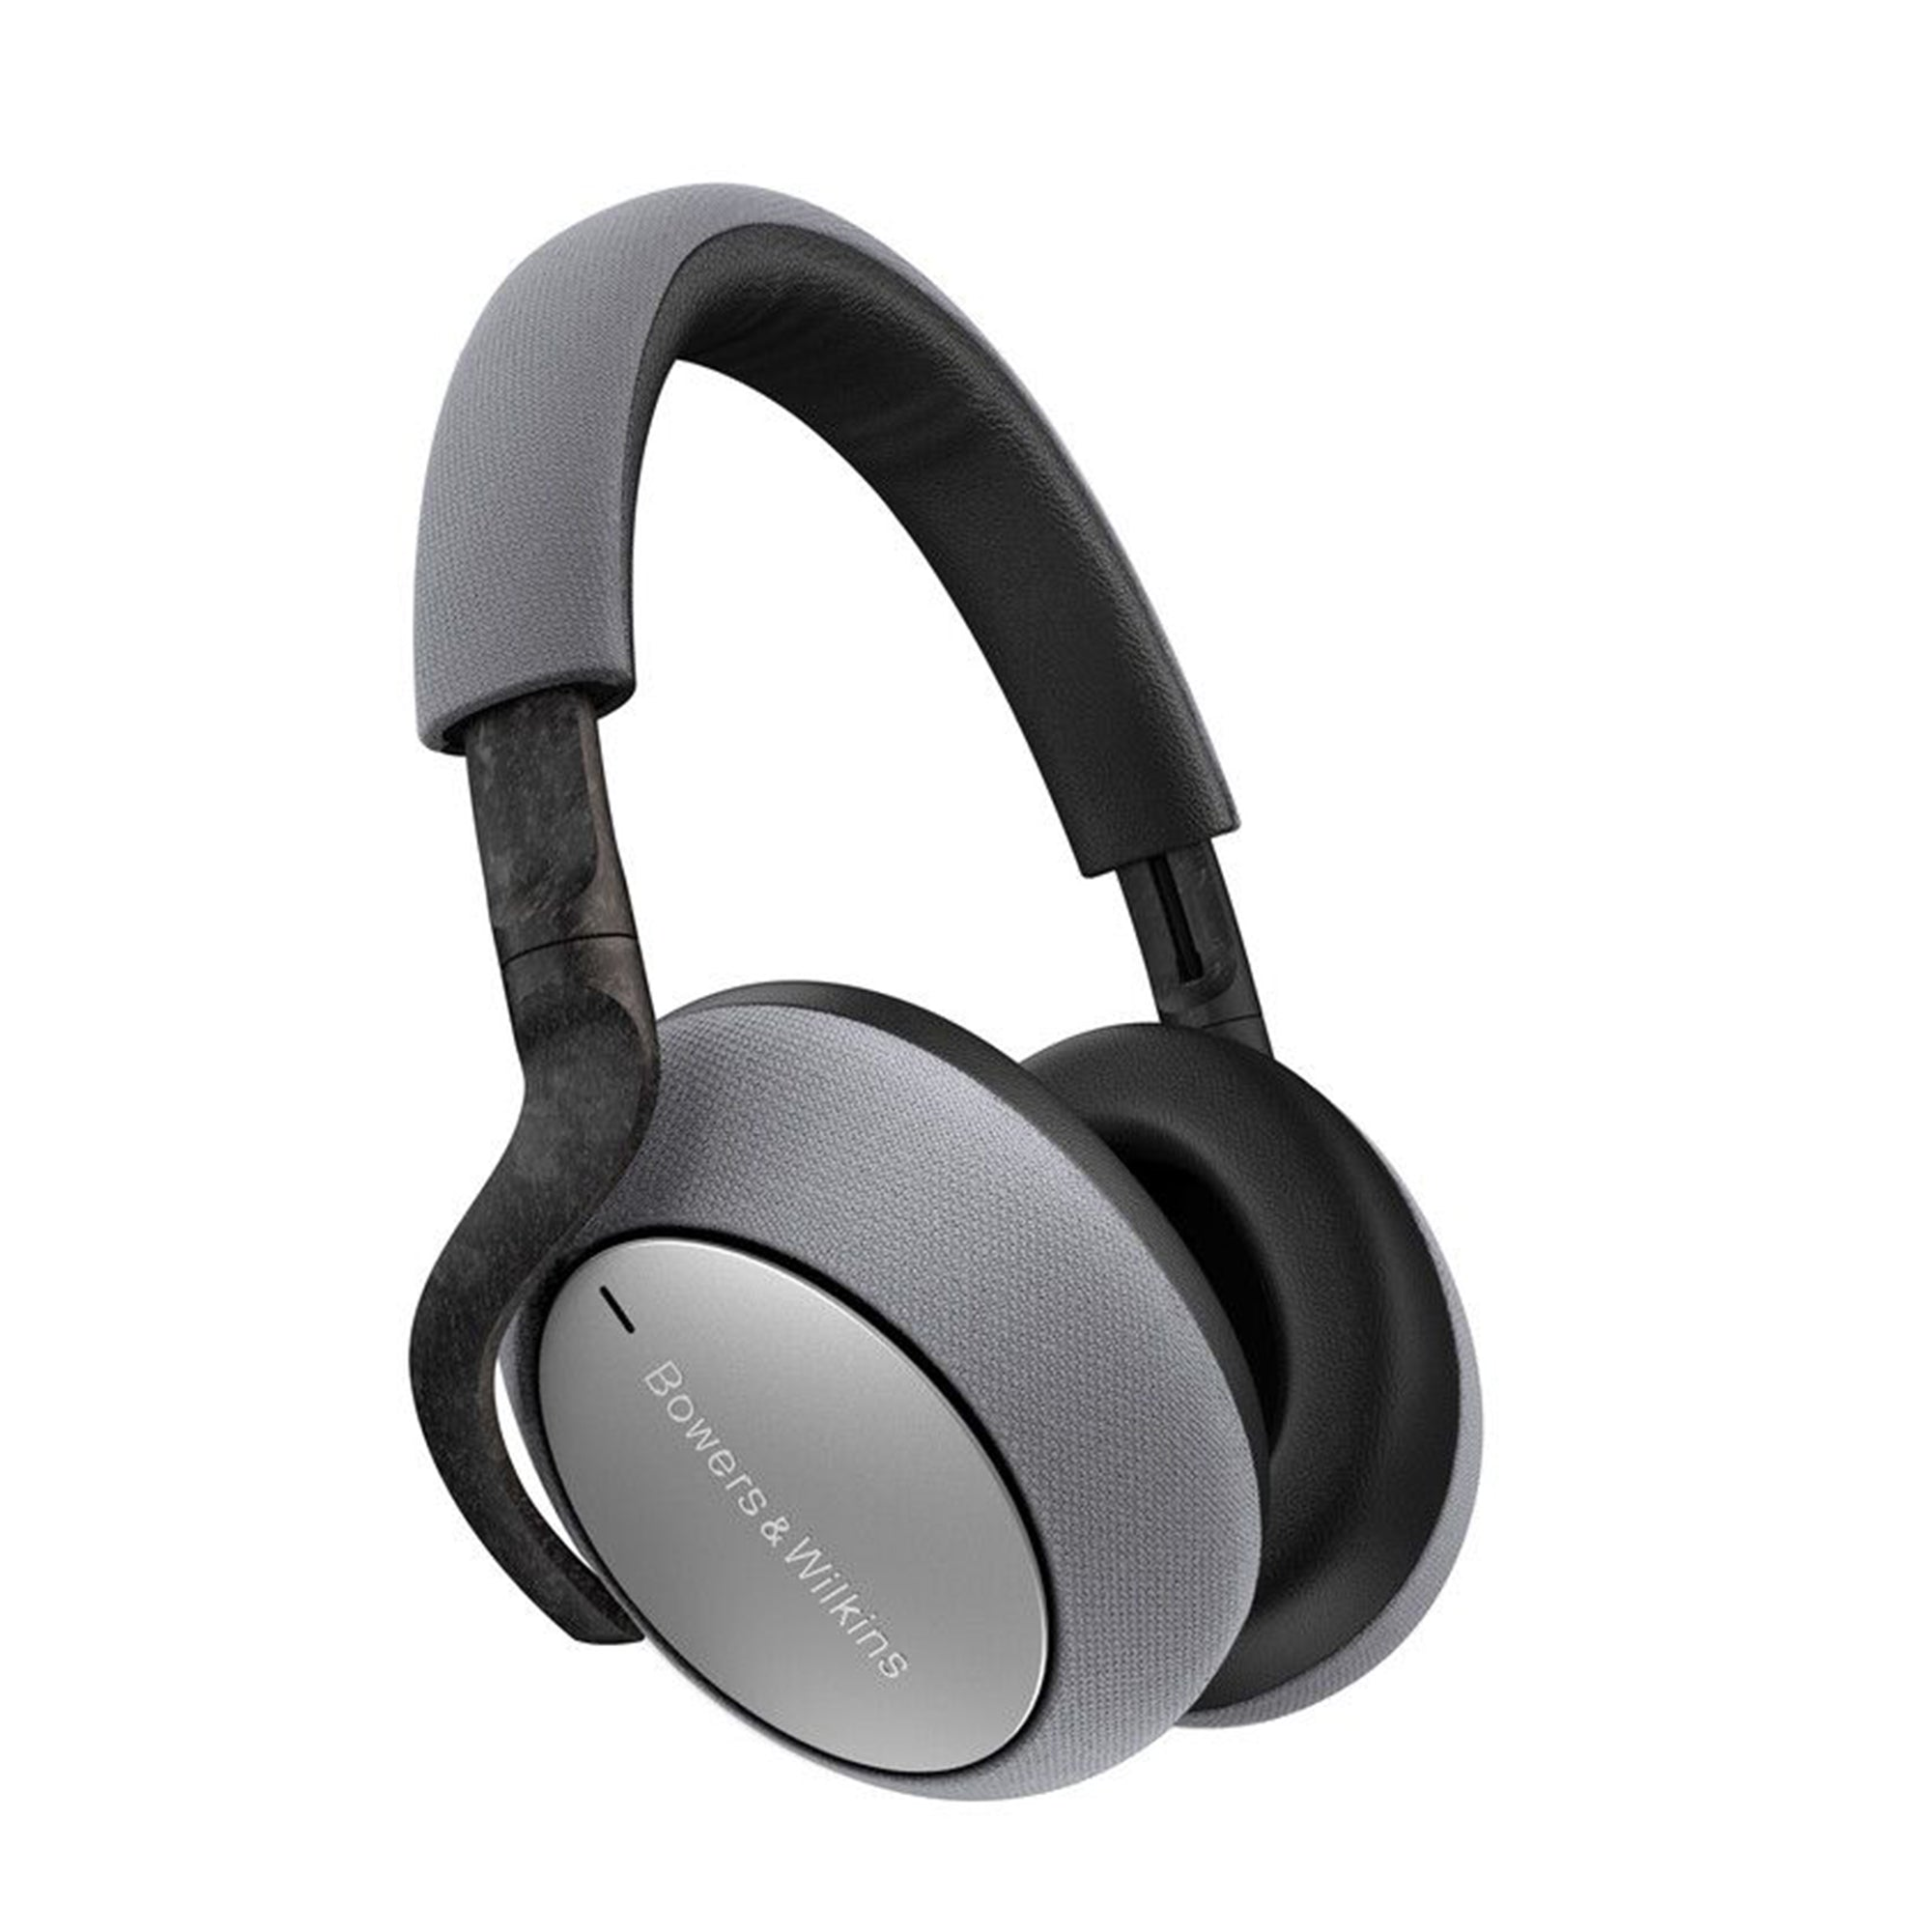 Bowers & Wilkins PX7 Over Ear Wireless ANC Headphones